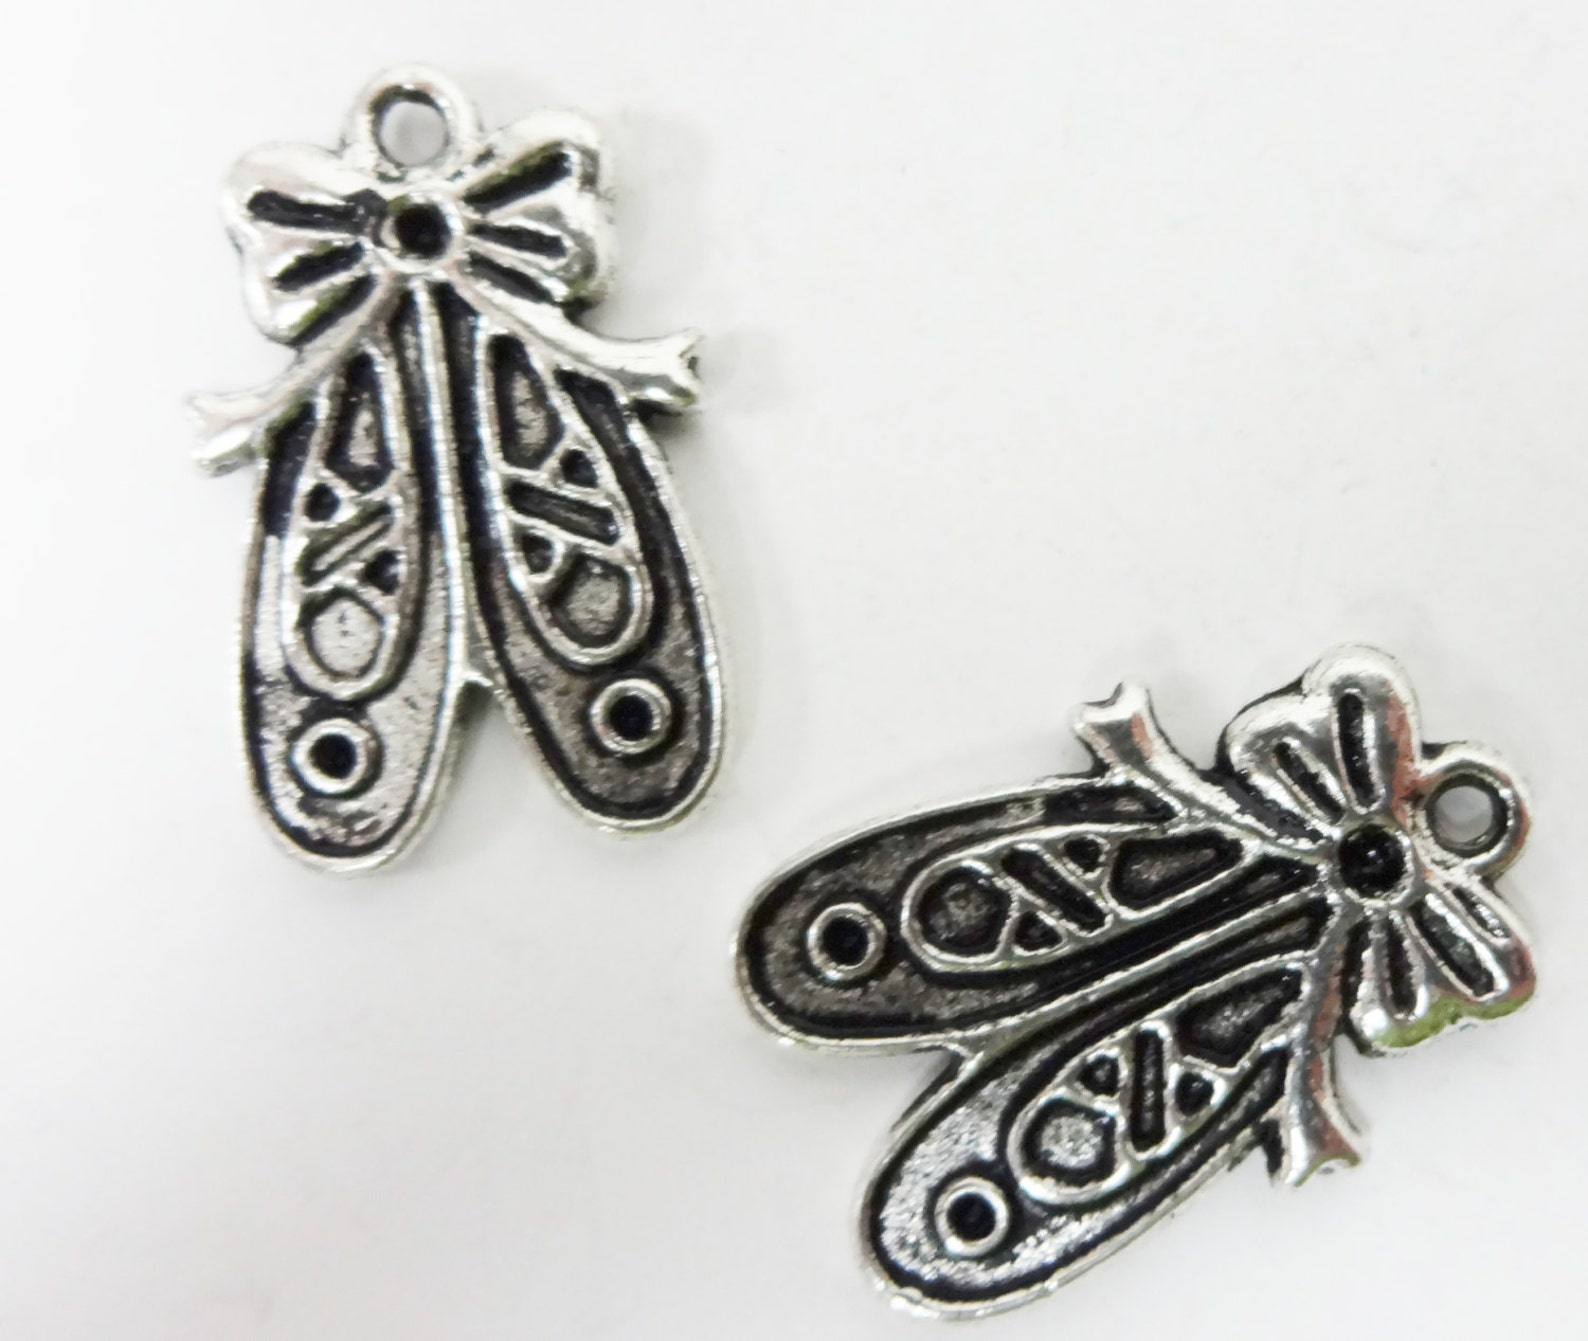 10 ballet slipper charms (double sided) 20x13x2mm item:k6